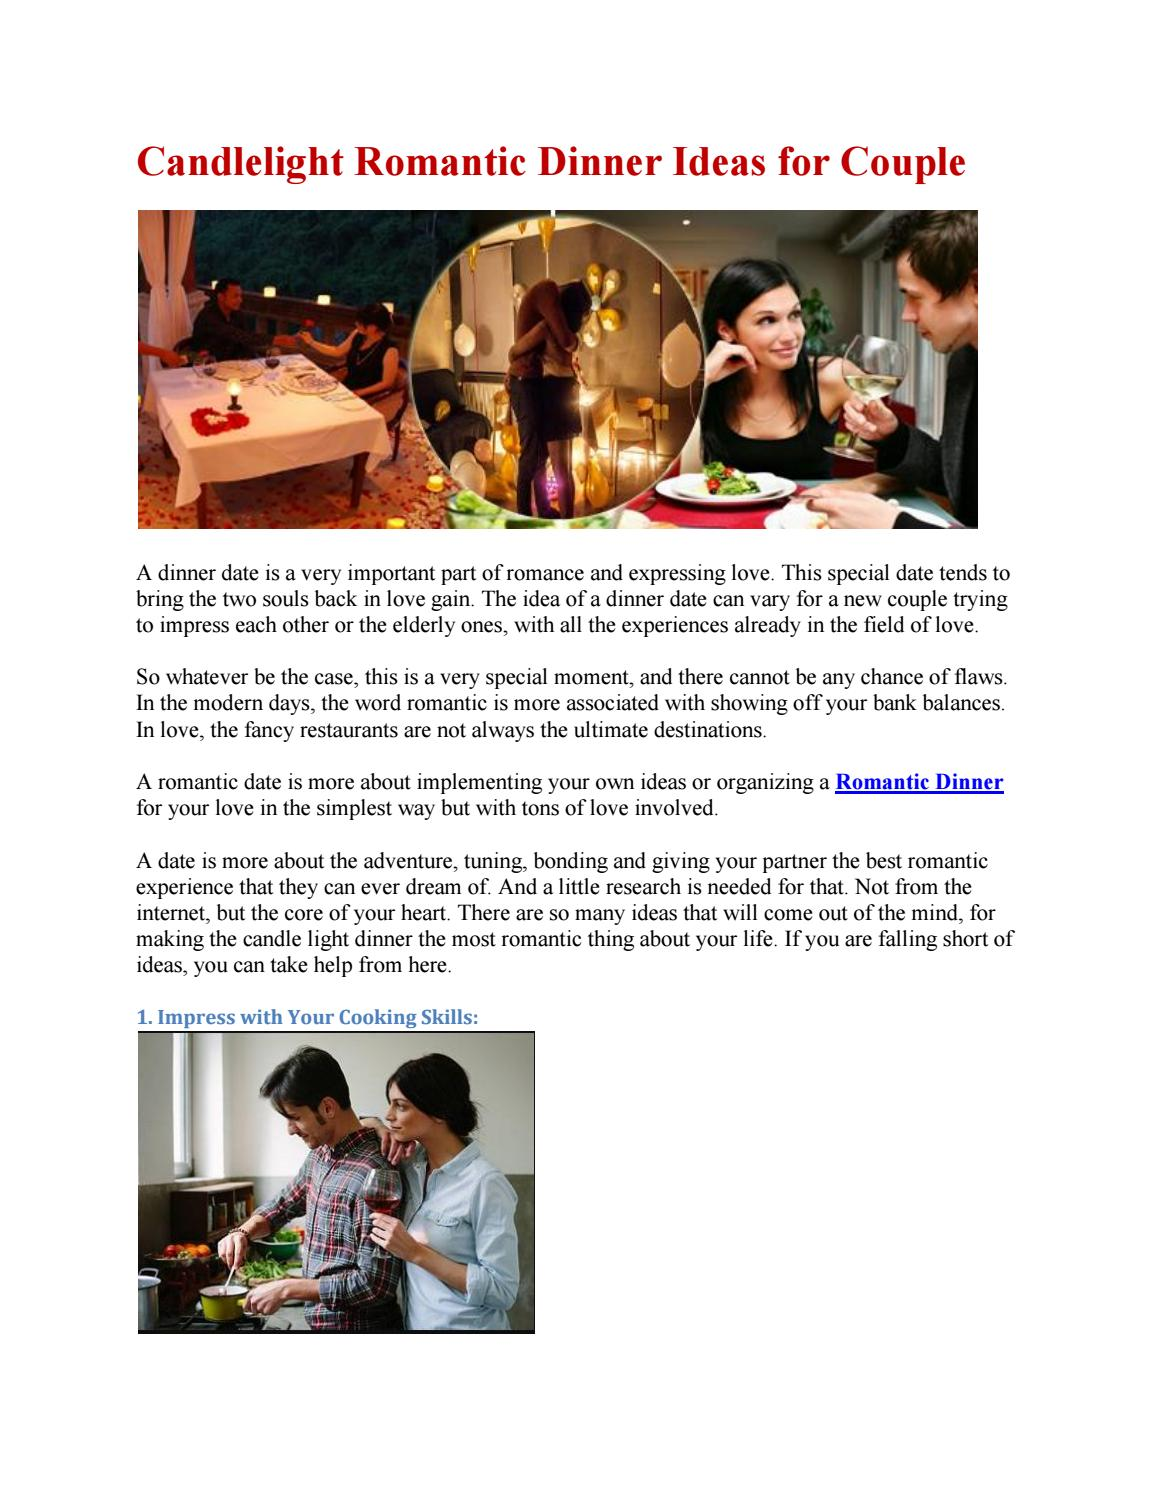 Candlelight Romantic Dinner Ideas for Couple by togetherv - issuu